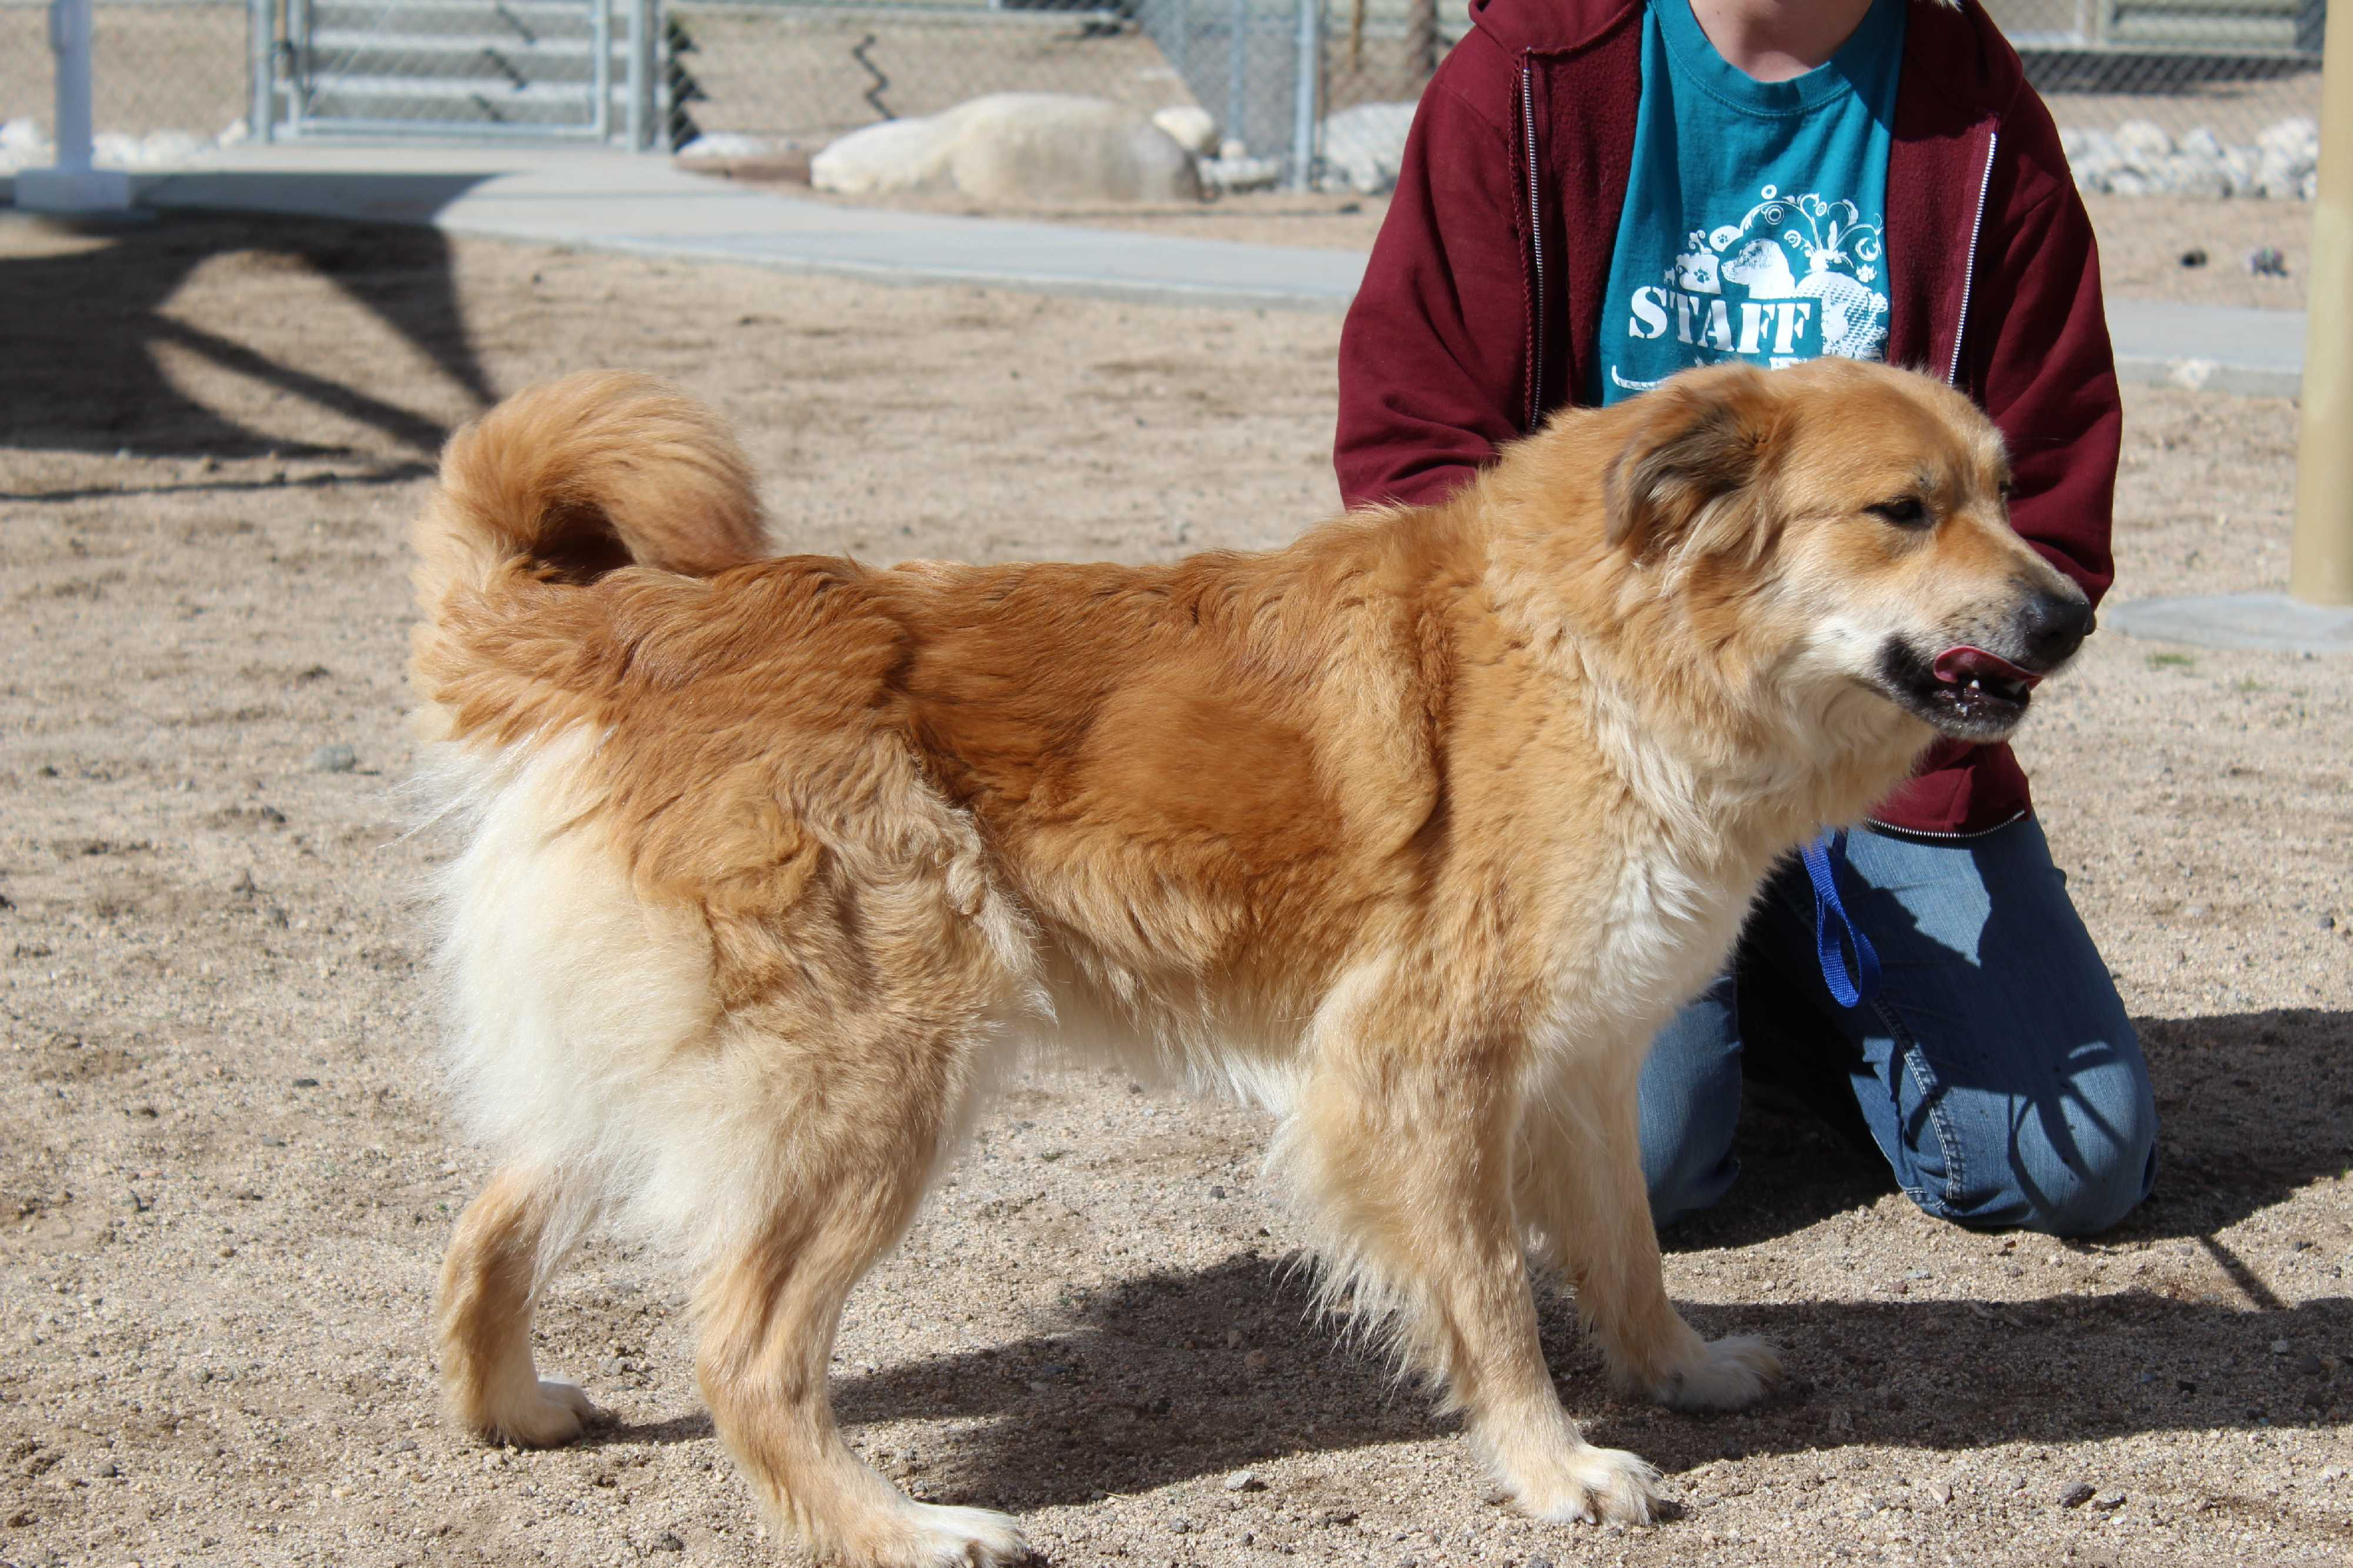 Husky puppies for sale yucca valley - Yucca Valley Ca Retriever Unknown Type Meet Anastasia Duchess Bell A Dog For Adoption